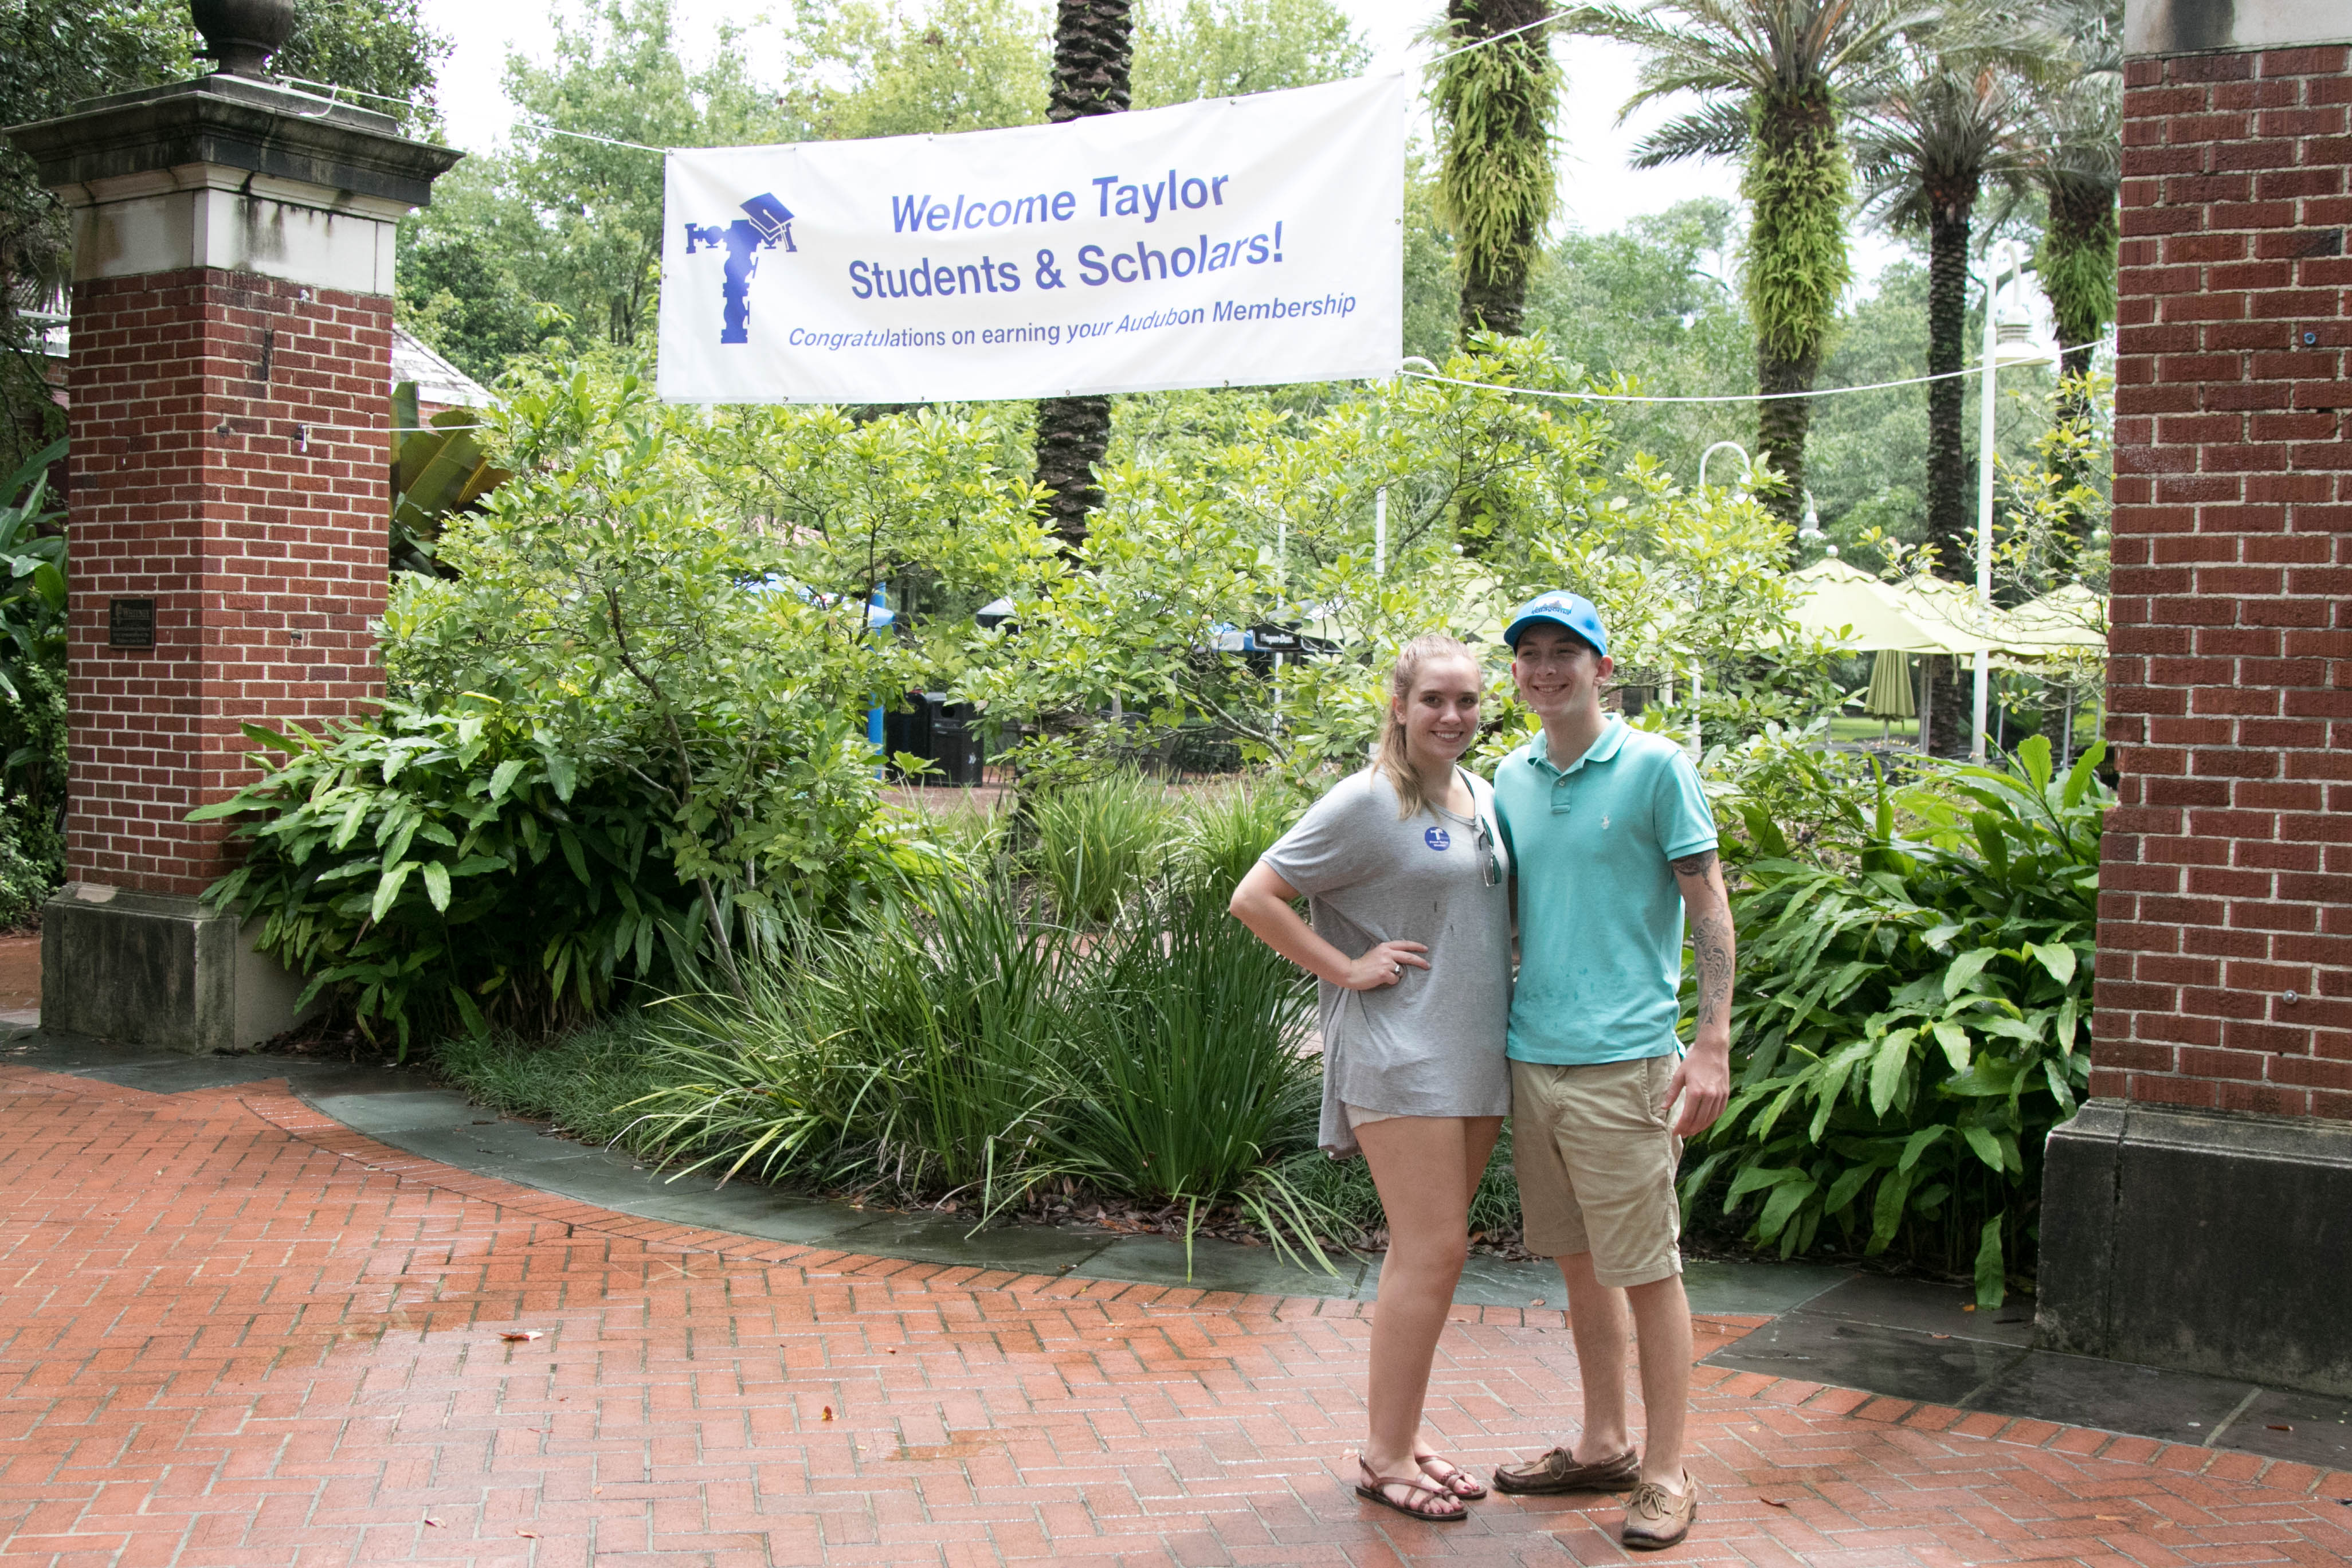 Audubon Nature Institute and New Orleans Museum of Art Partner with Patrick F. Taylor Foundation to Expand Taylor Scholars Awards Program